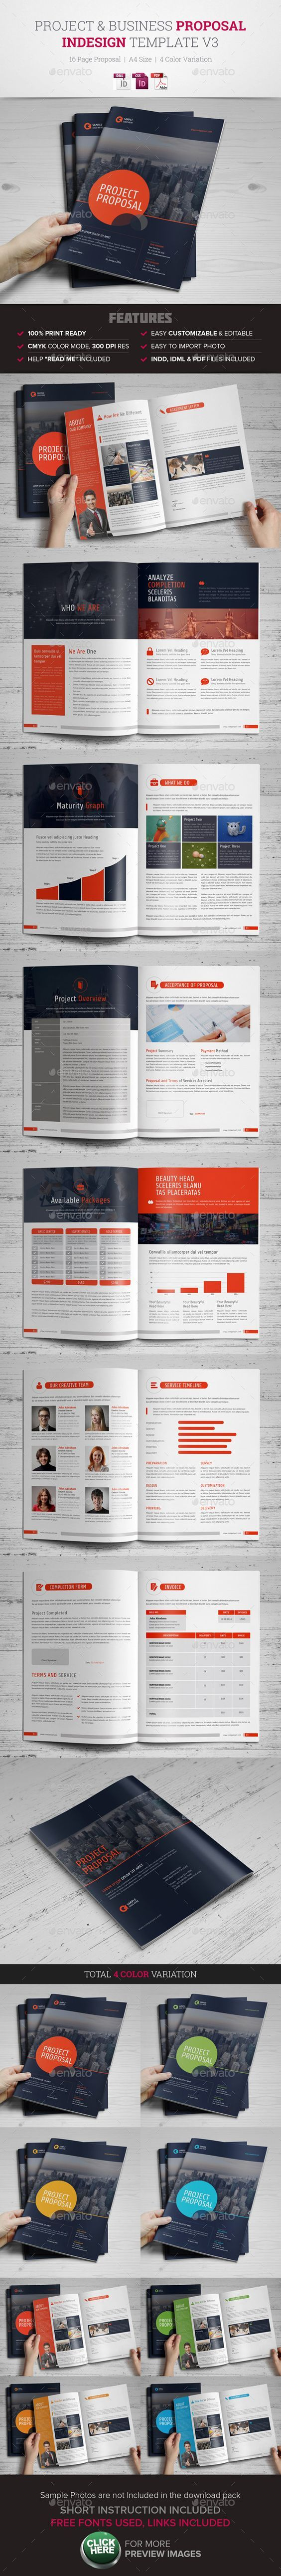 Project & Business Proposal Template v3: